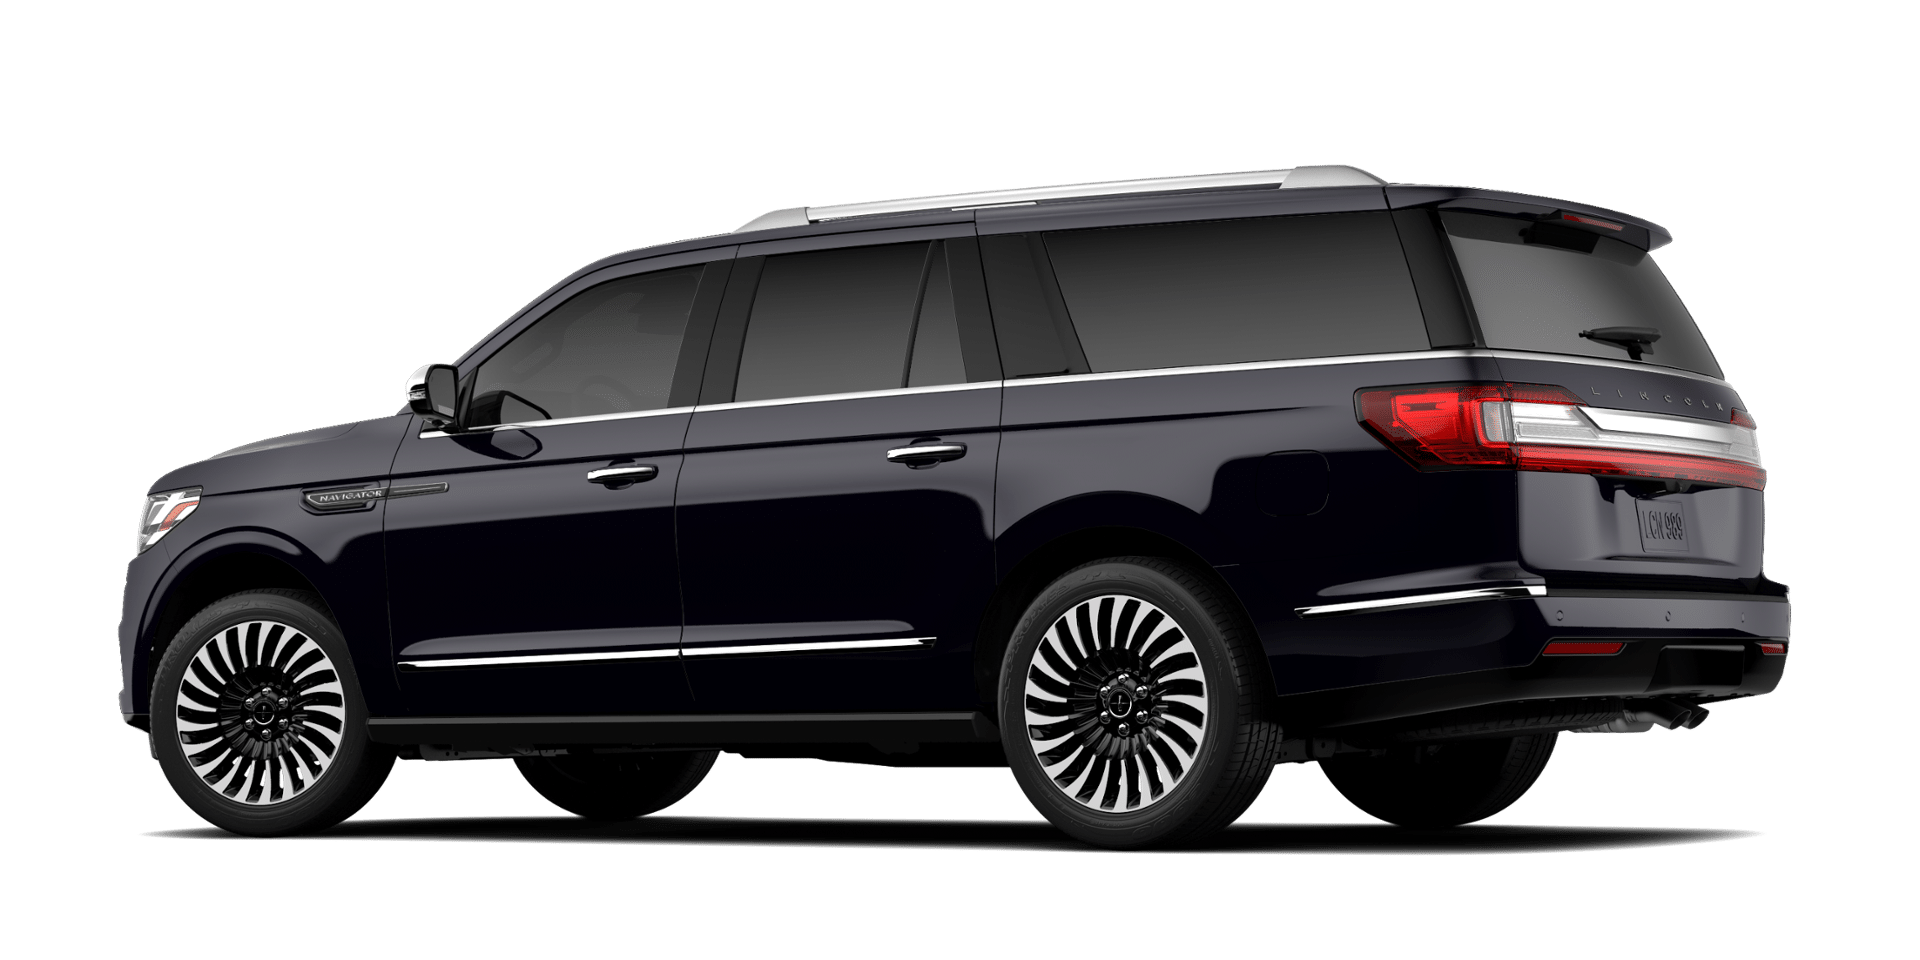 2018 Lincoln Navigator Build Price Rv Time Pinterest